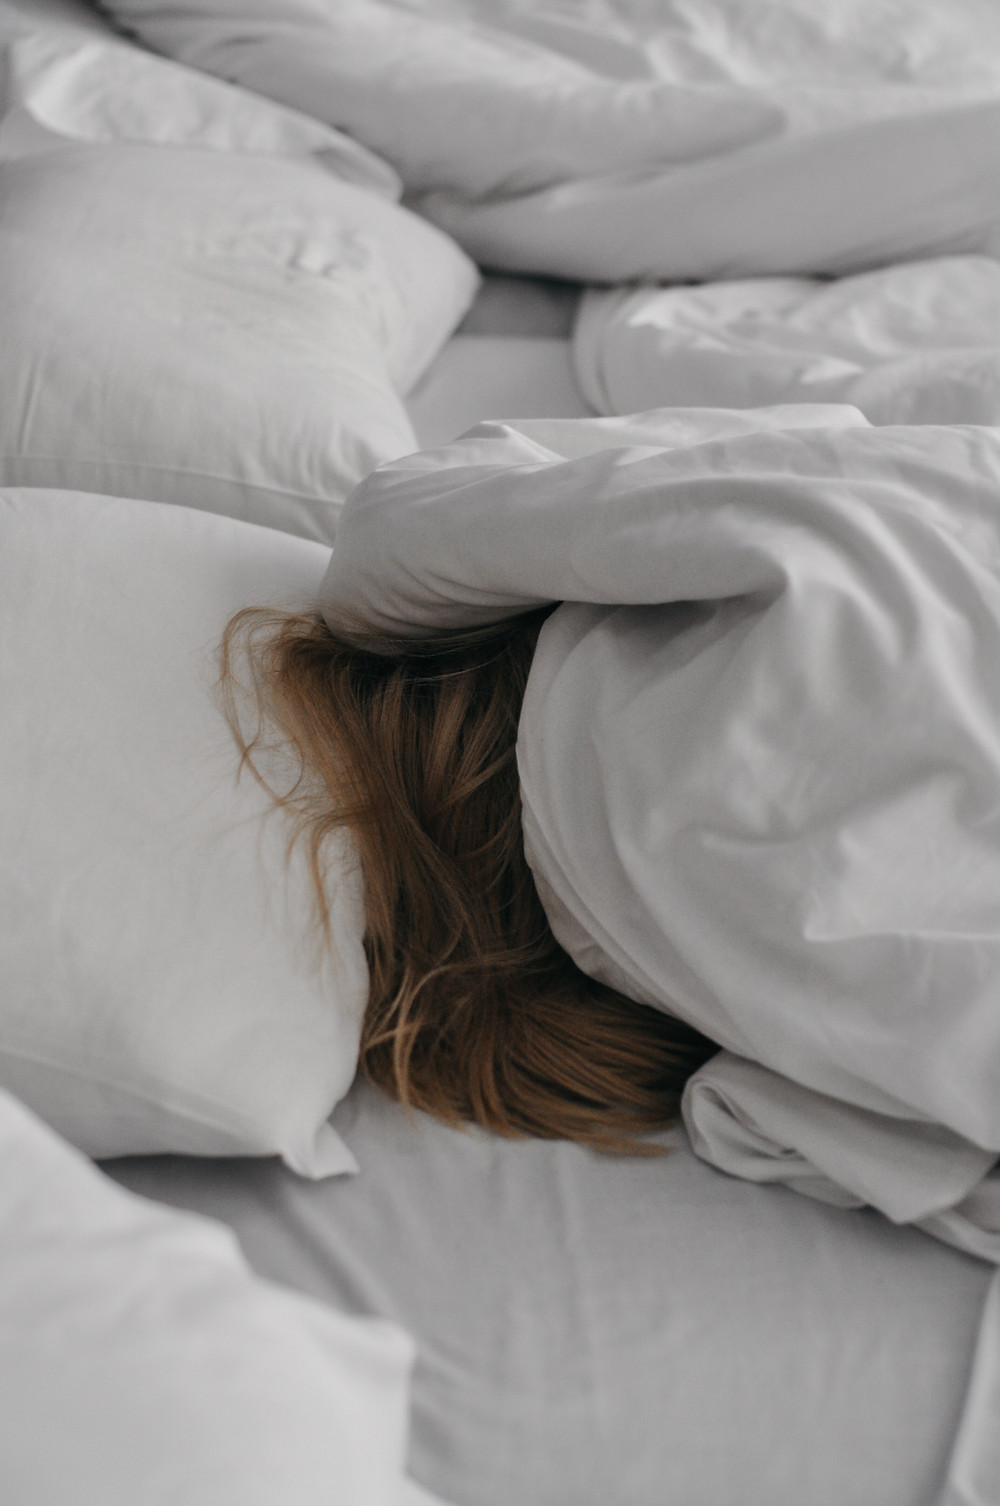 Person in bed with covers over head and sunlight shining on the bed.